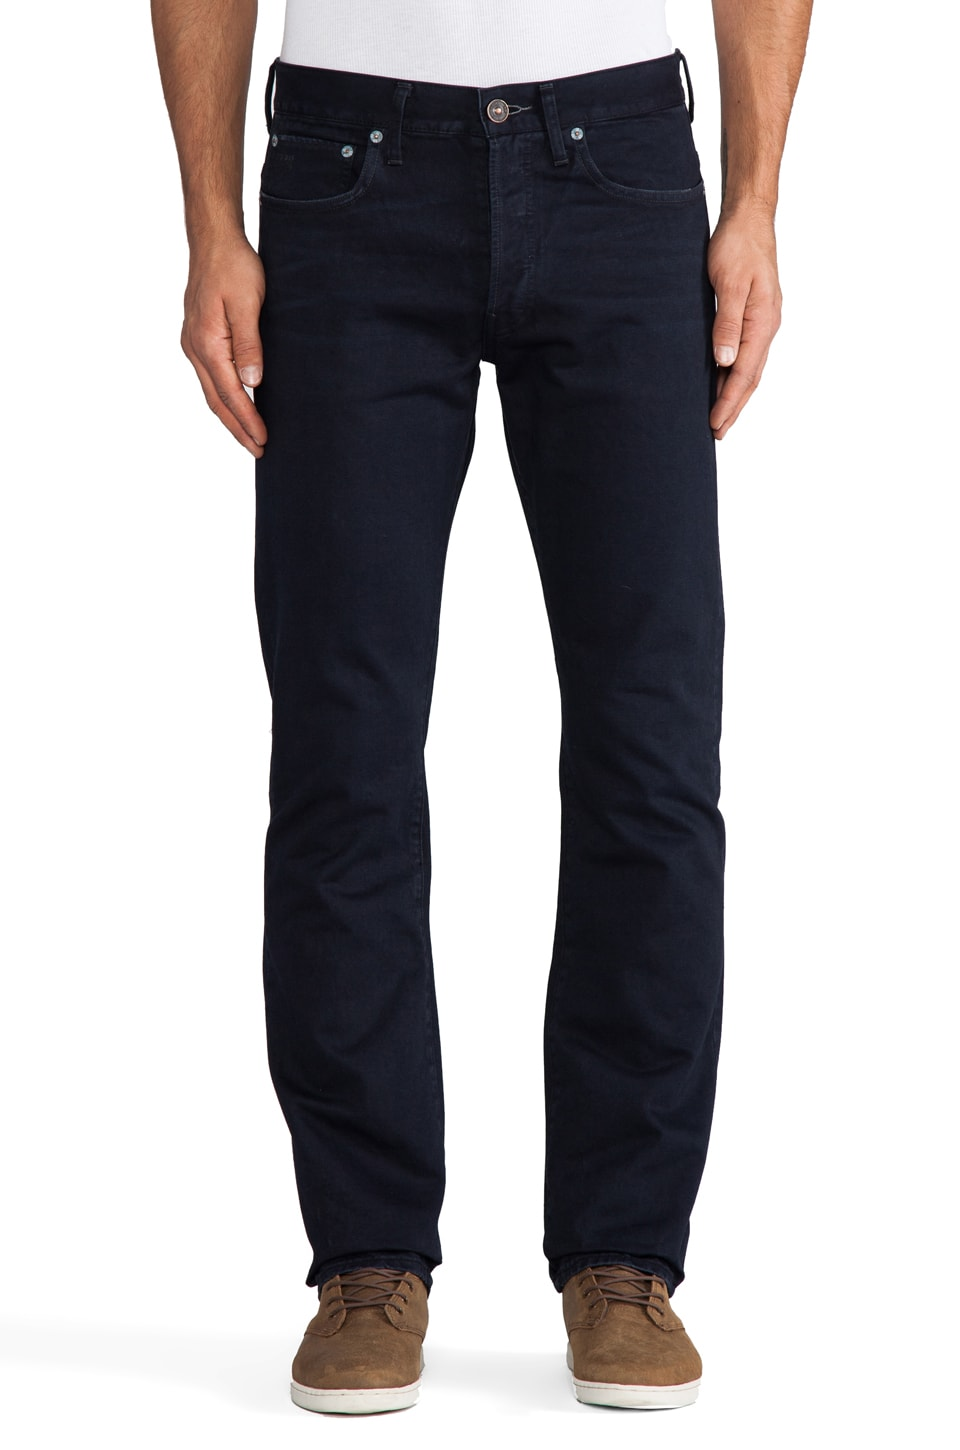 G-Star Raw 3301 Straight in Aluin Destroy Mazarine Blue